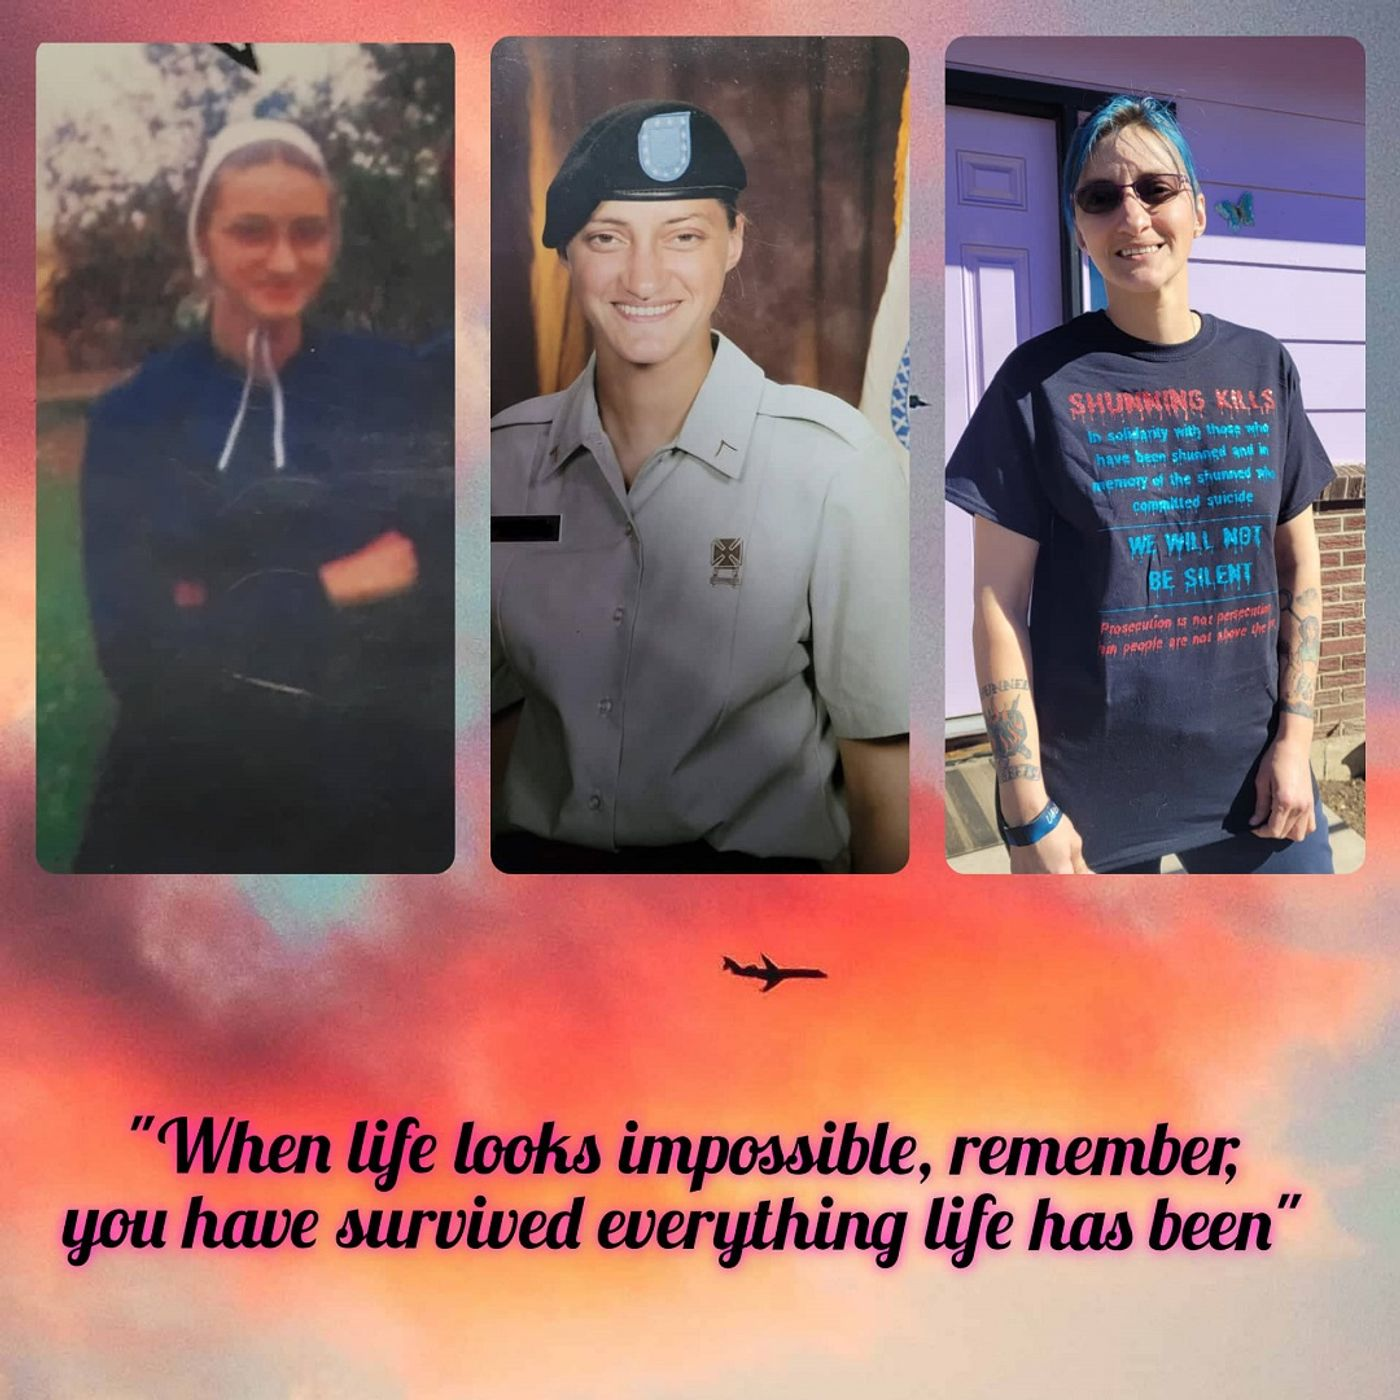 Episode 144: Mary Byler - From Amish Survivor to Army Thriver